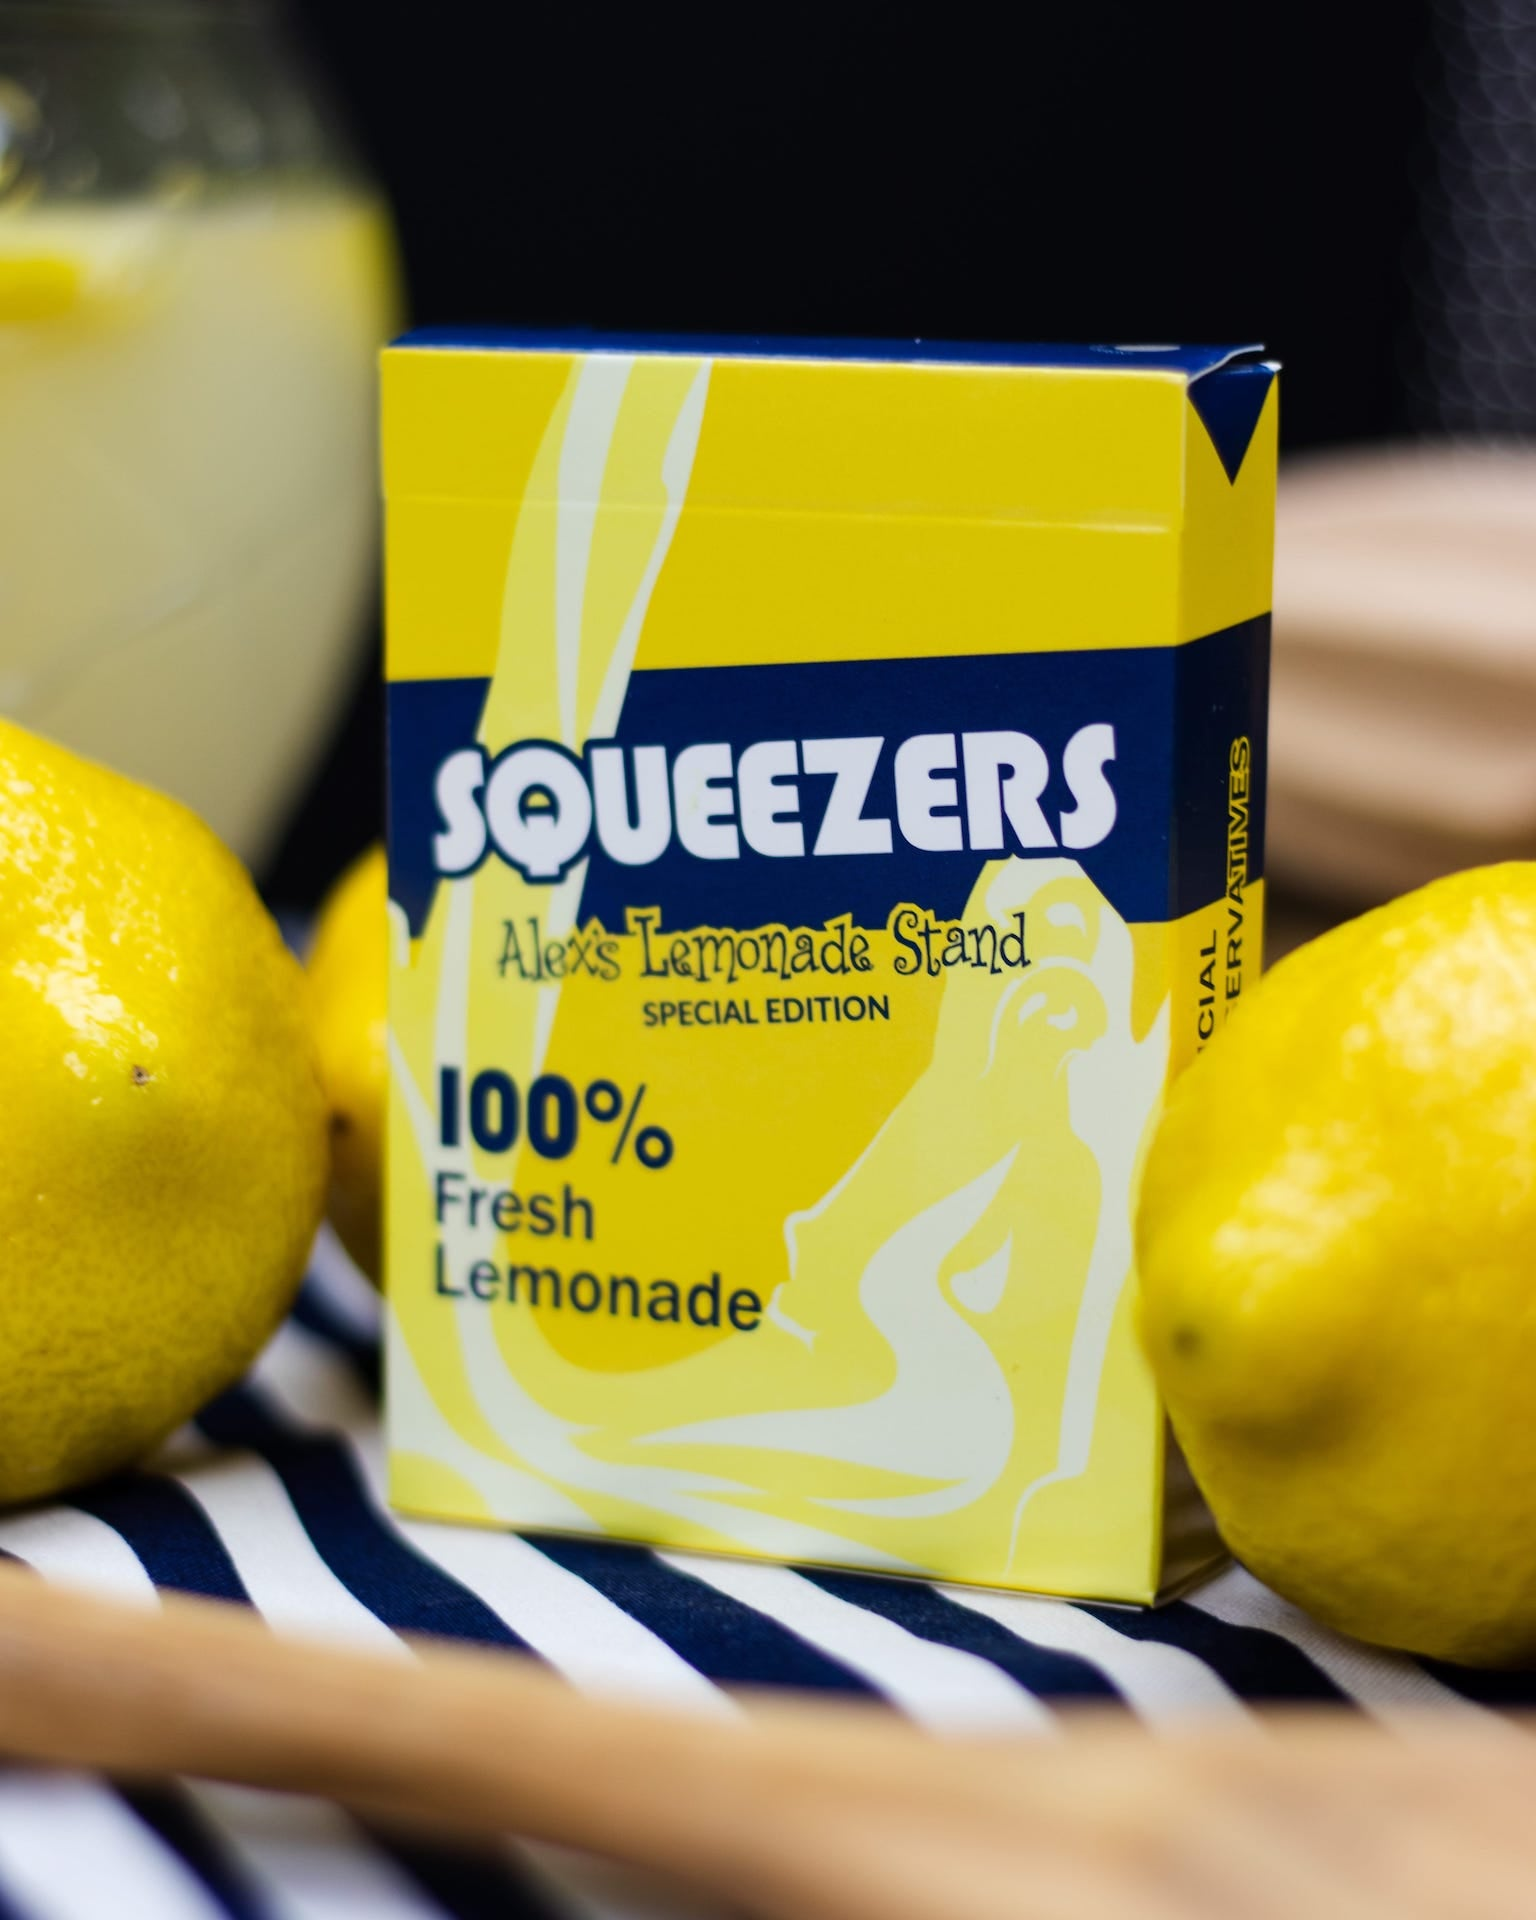 Squeezers Playing Cards V2 Alex's Lemonade Stand Edition